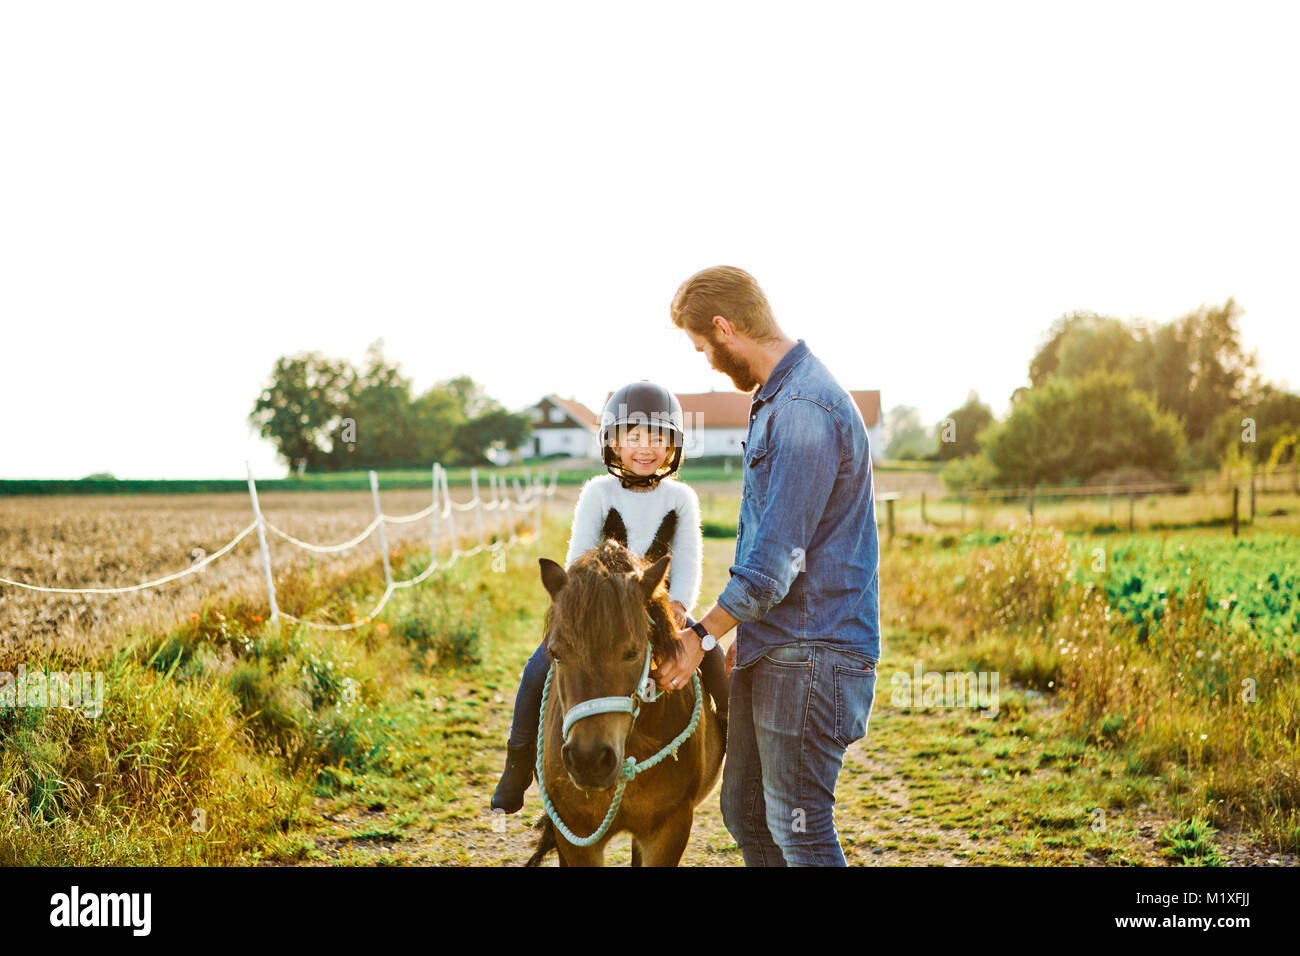 Man helping his daughter ride horse in Friseboda, Sweden - Stock Image